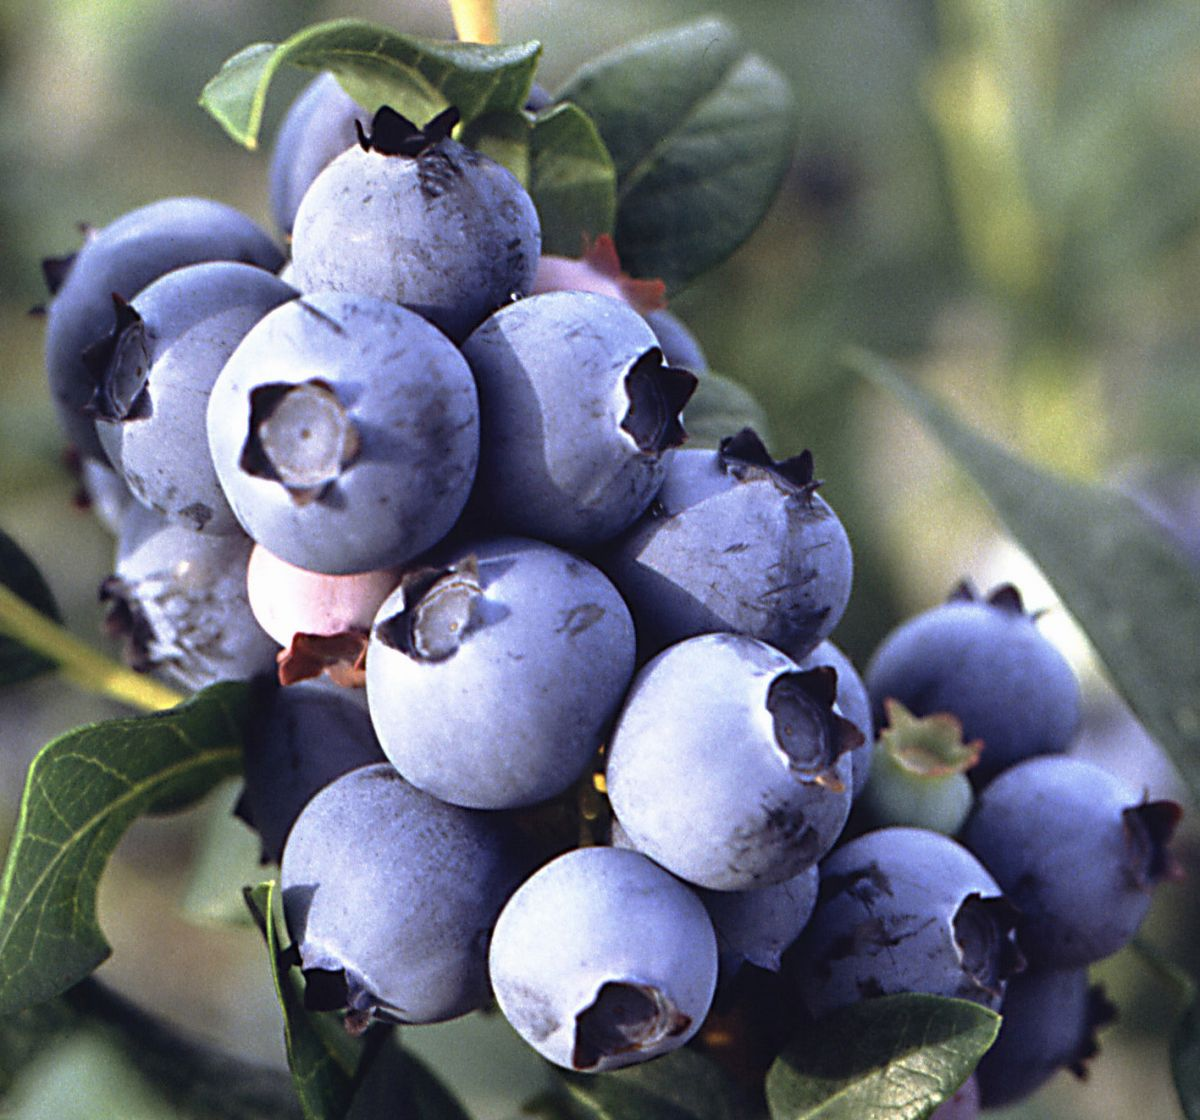 Blueberry fruit on plant